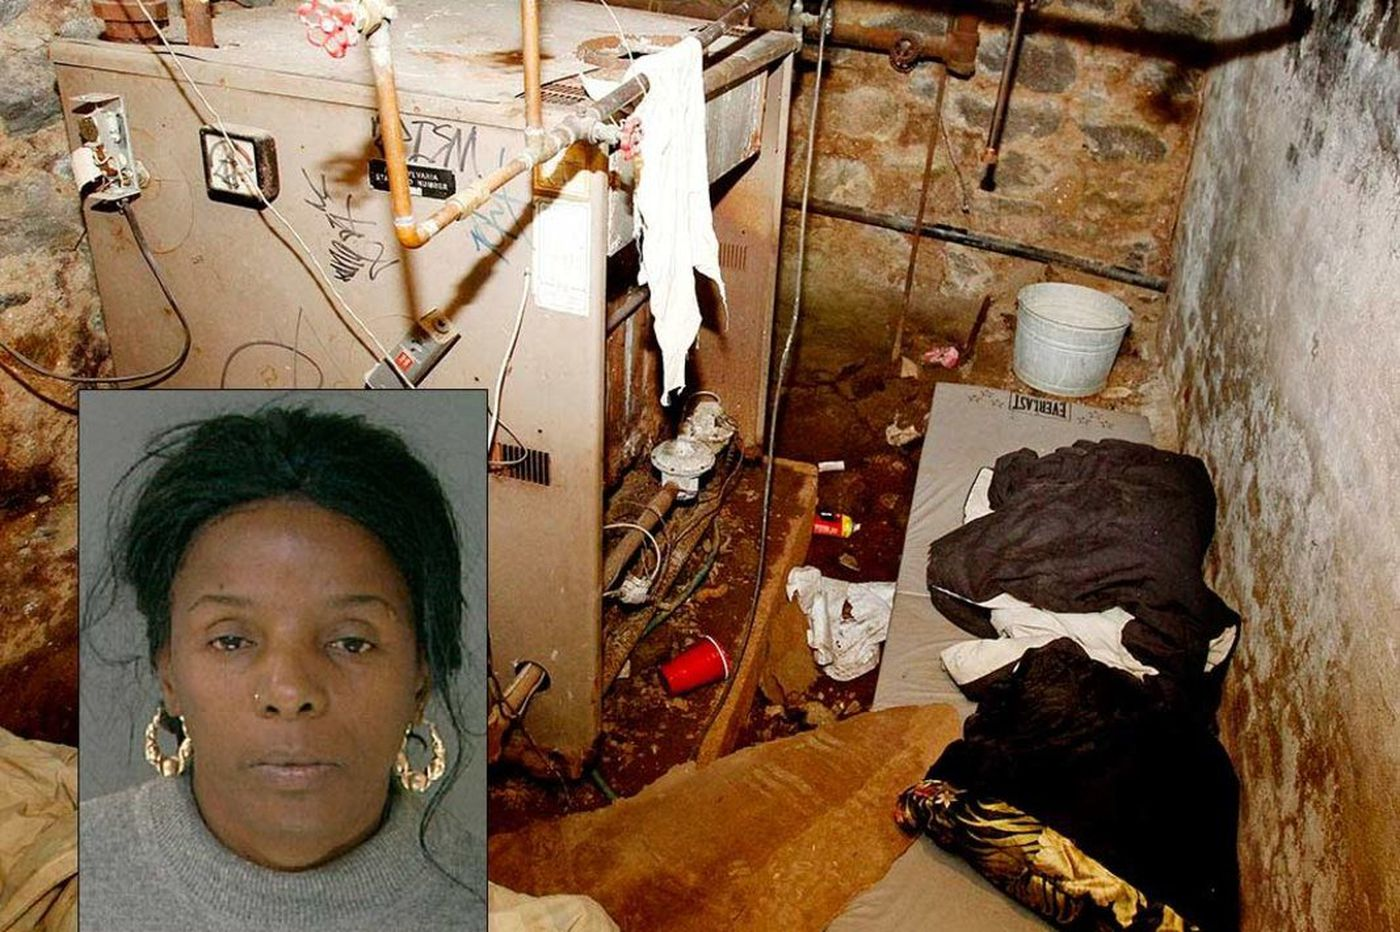 Tacony 'dungeon' case ends with admission of hate crimes against disabled